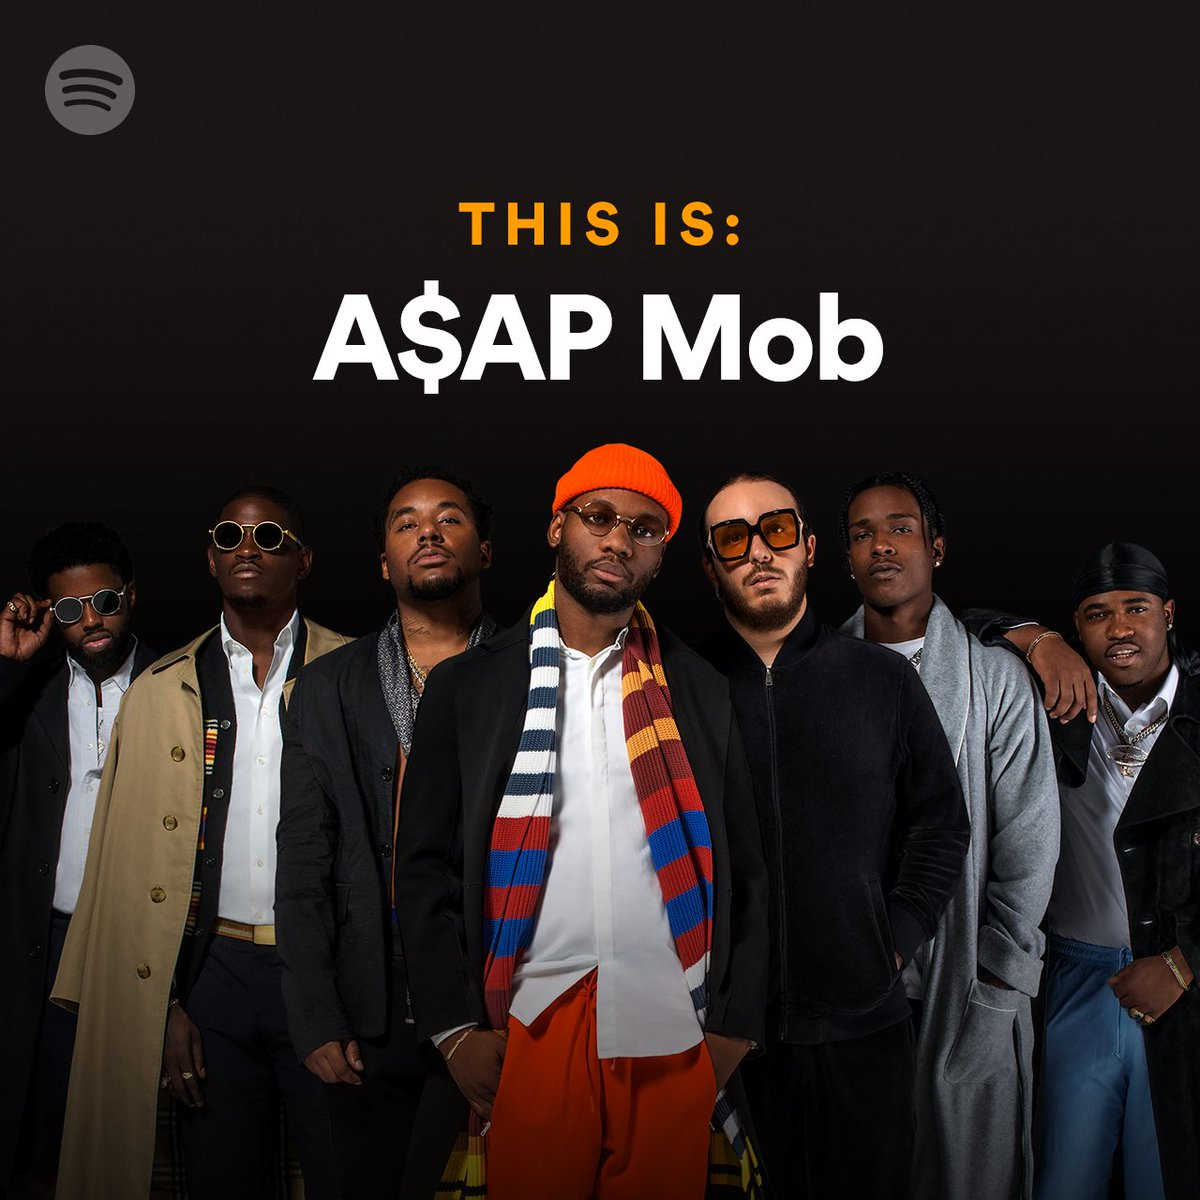 The essential A$AP Mob playlist, curated by the crew in honor of #YAMSDAY tomorrow 🙏 https://t.co/iRUL92bwxp